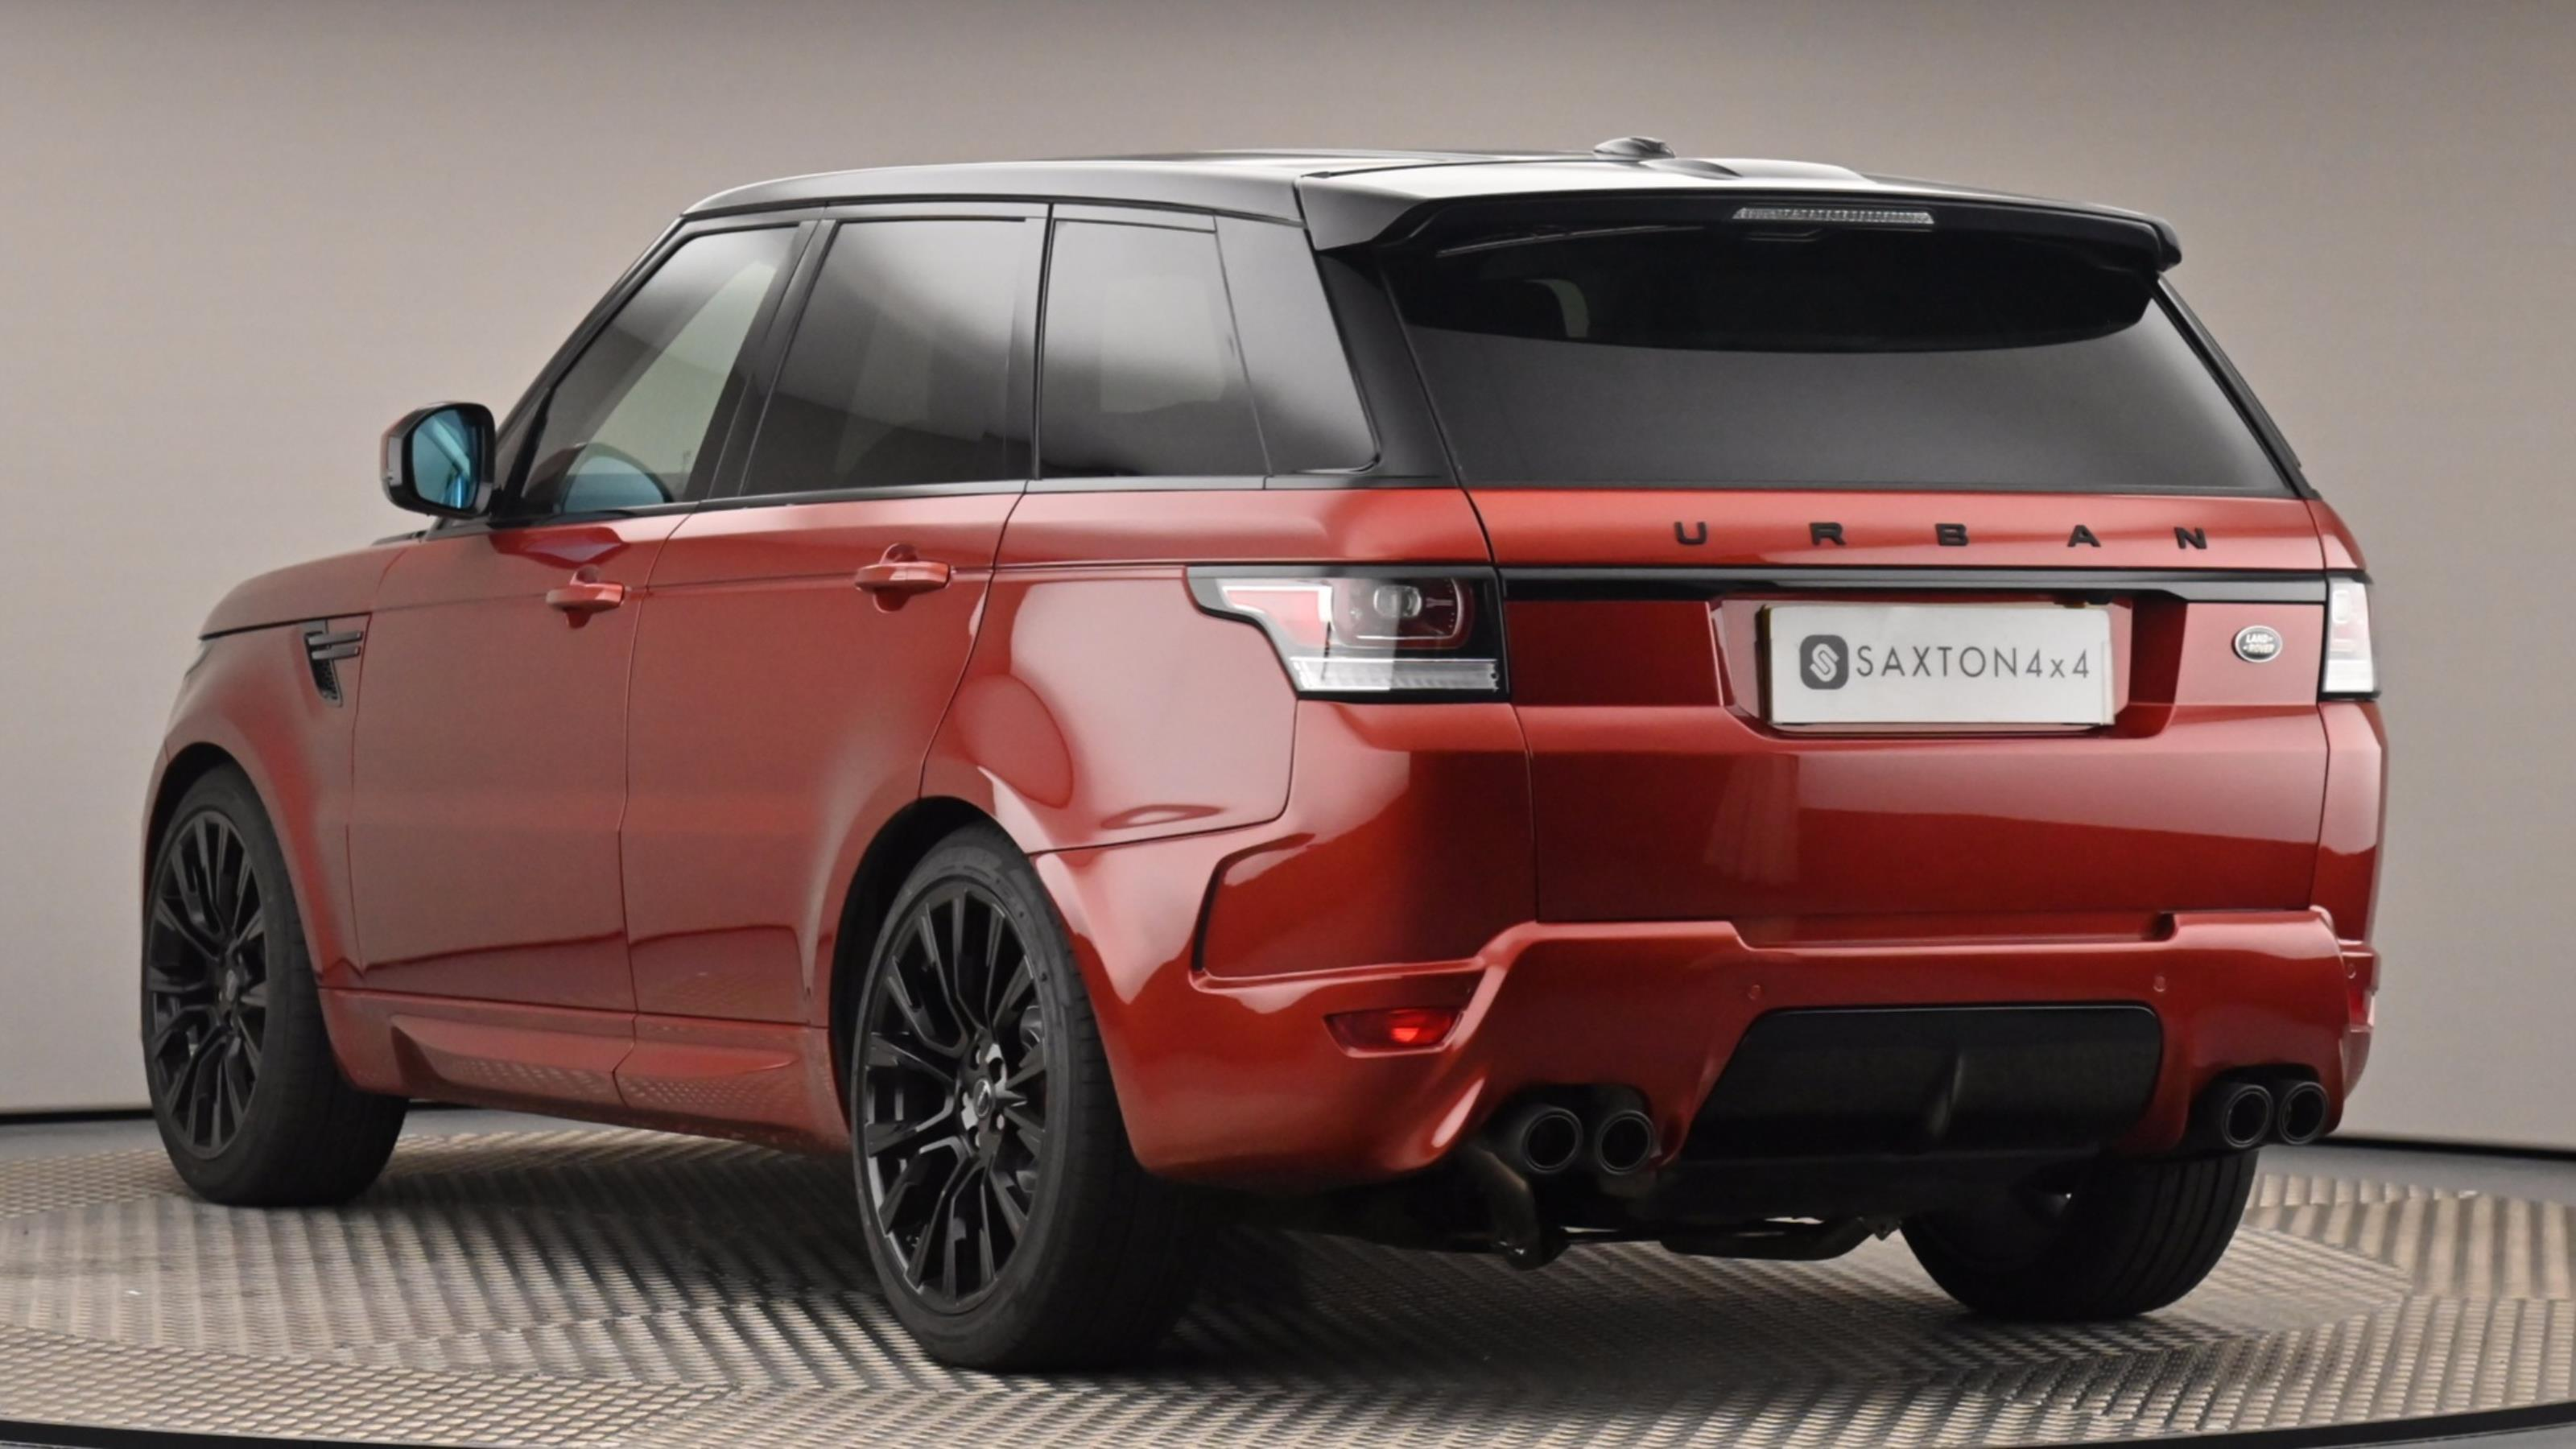 Used 2014 Land Rover RANGE ROVER SPORT 3.0 SDV6 HSE 5dr Auto RED at Saxton4x4